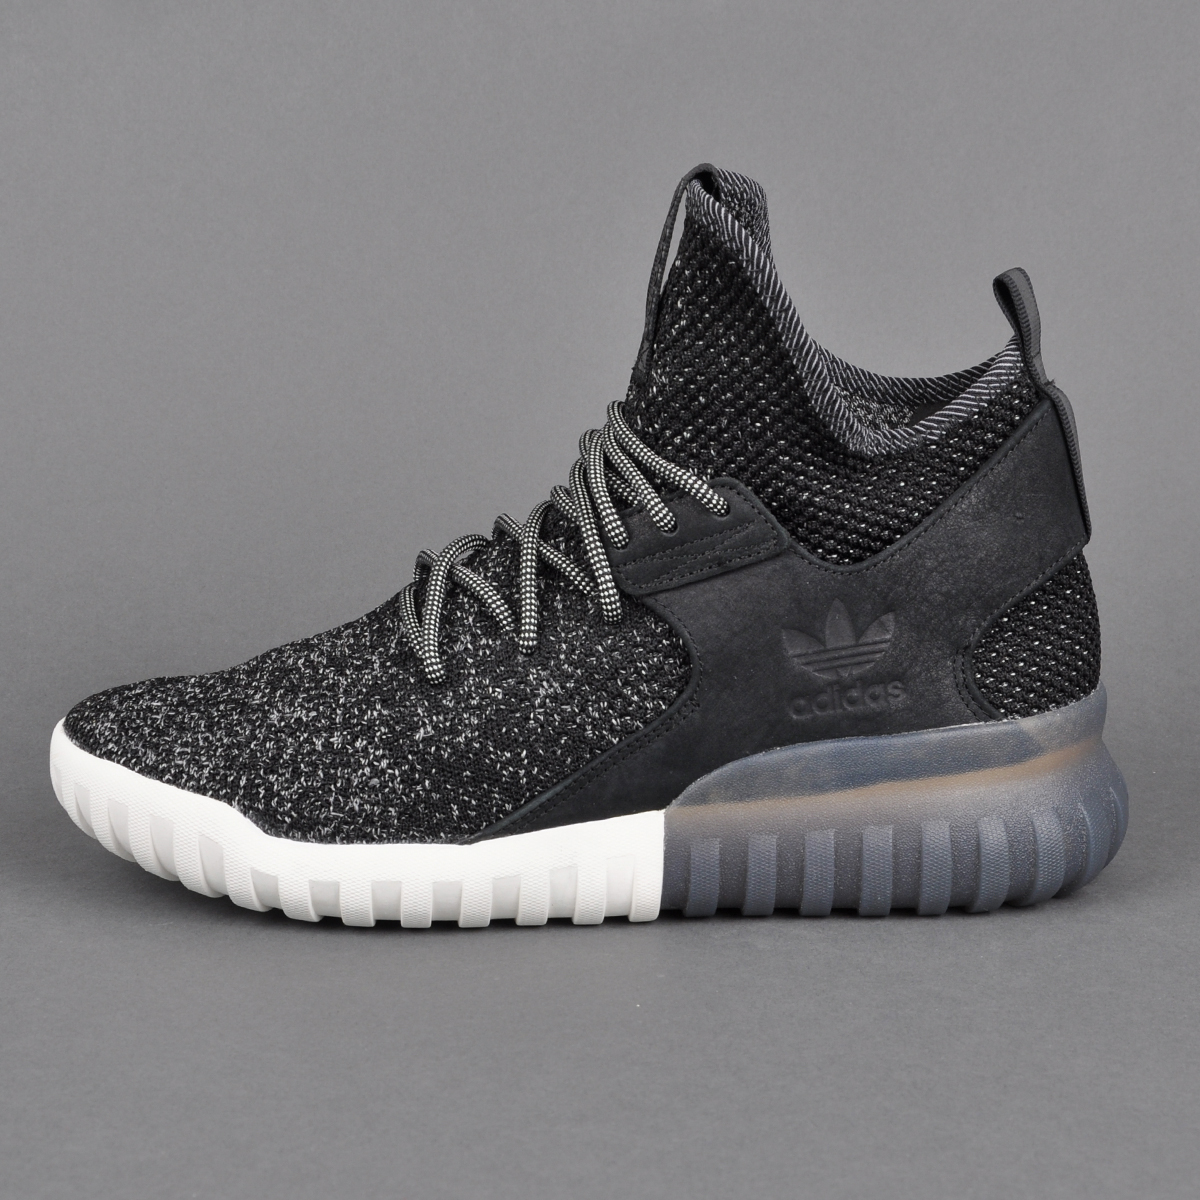 Adidas Originals Tubular Runner 'Dark Cargo'